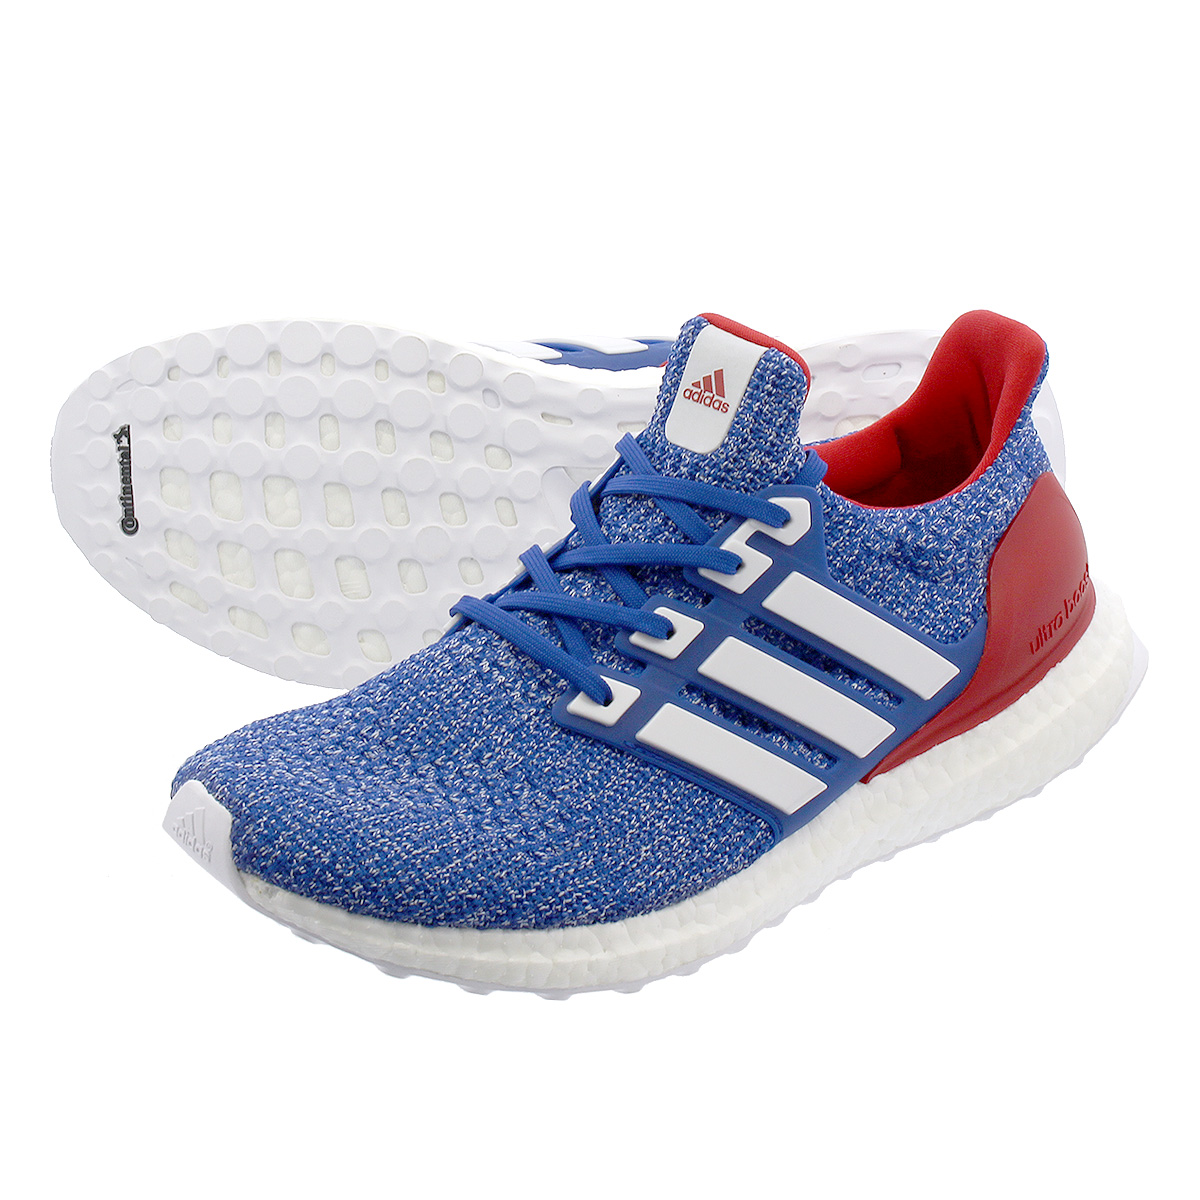 a62927859bb7c adidas ULTRA BOOST Adidas ultra boost COLLEGE ROYAL RUNNING WHITE POWER RED  ee3704